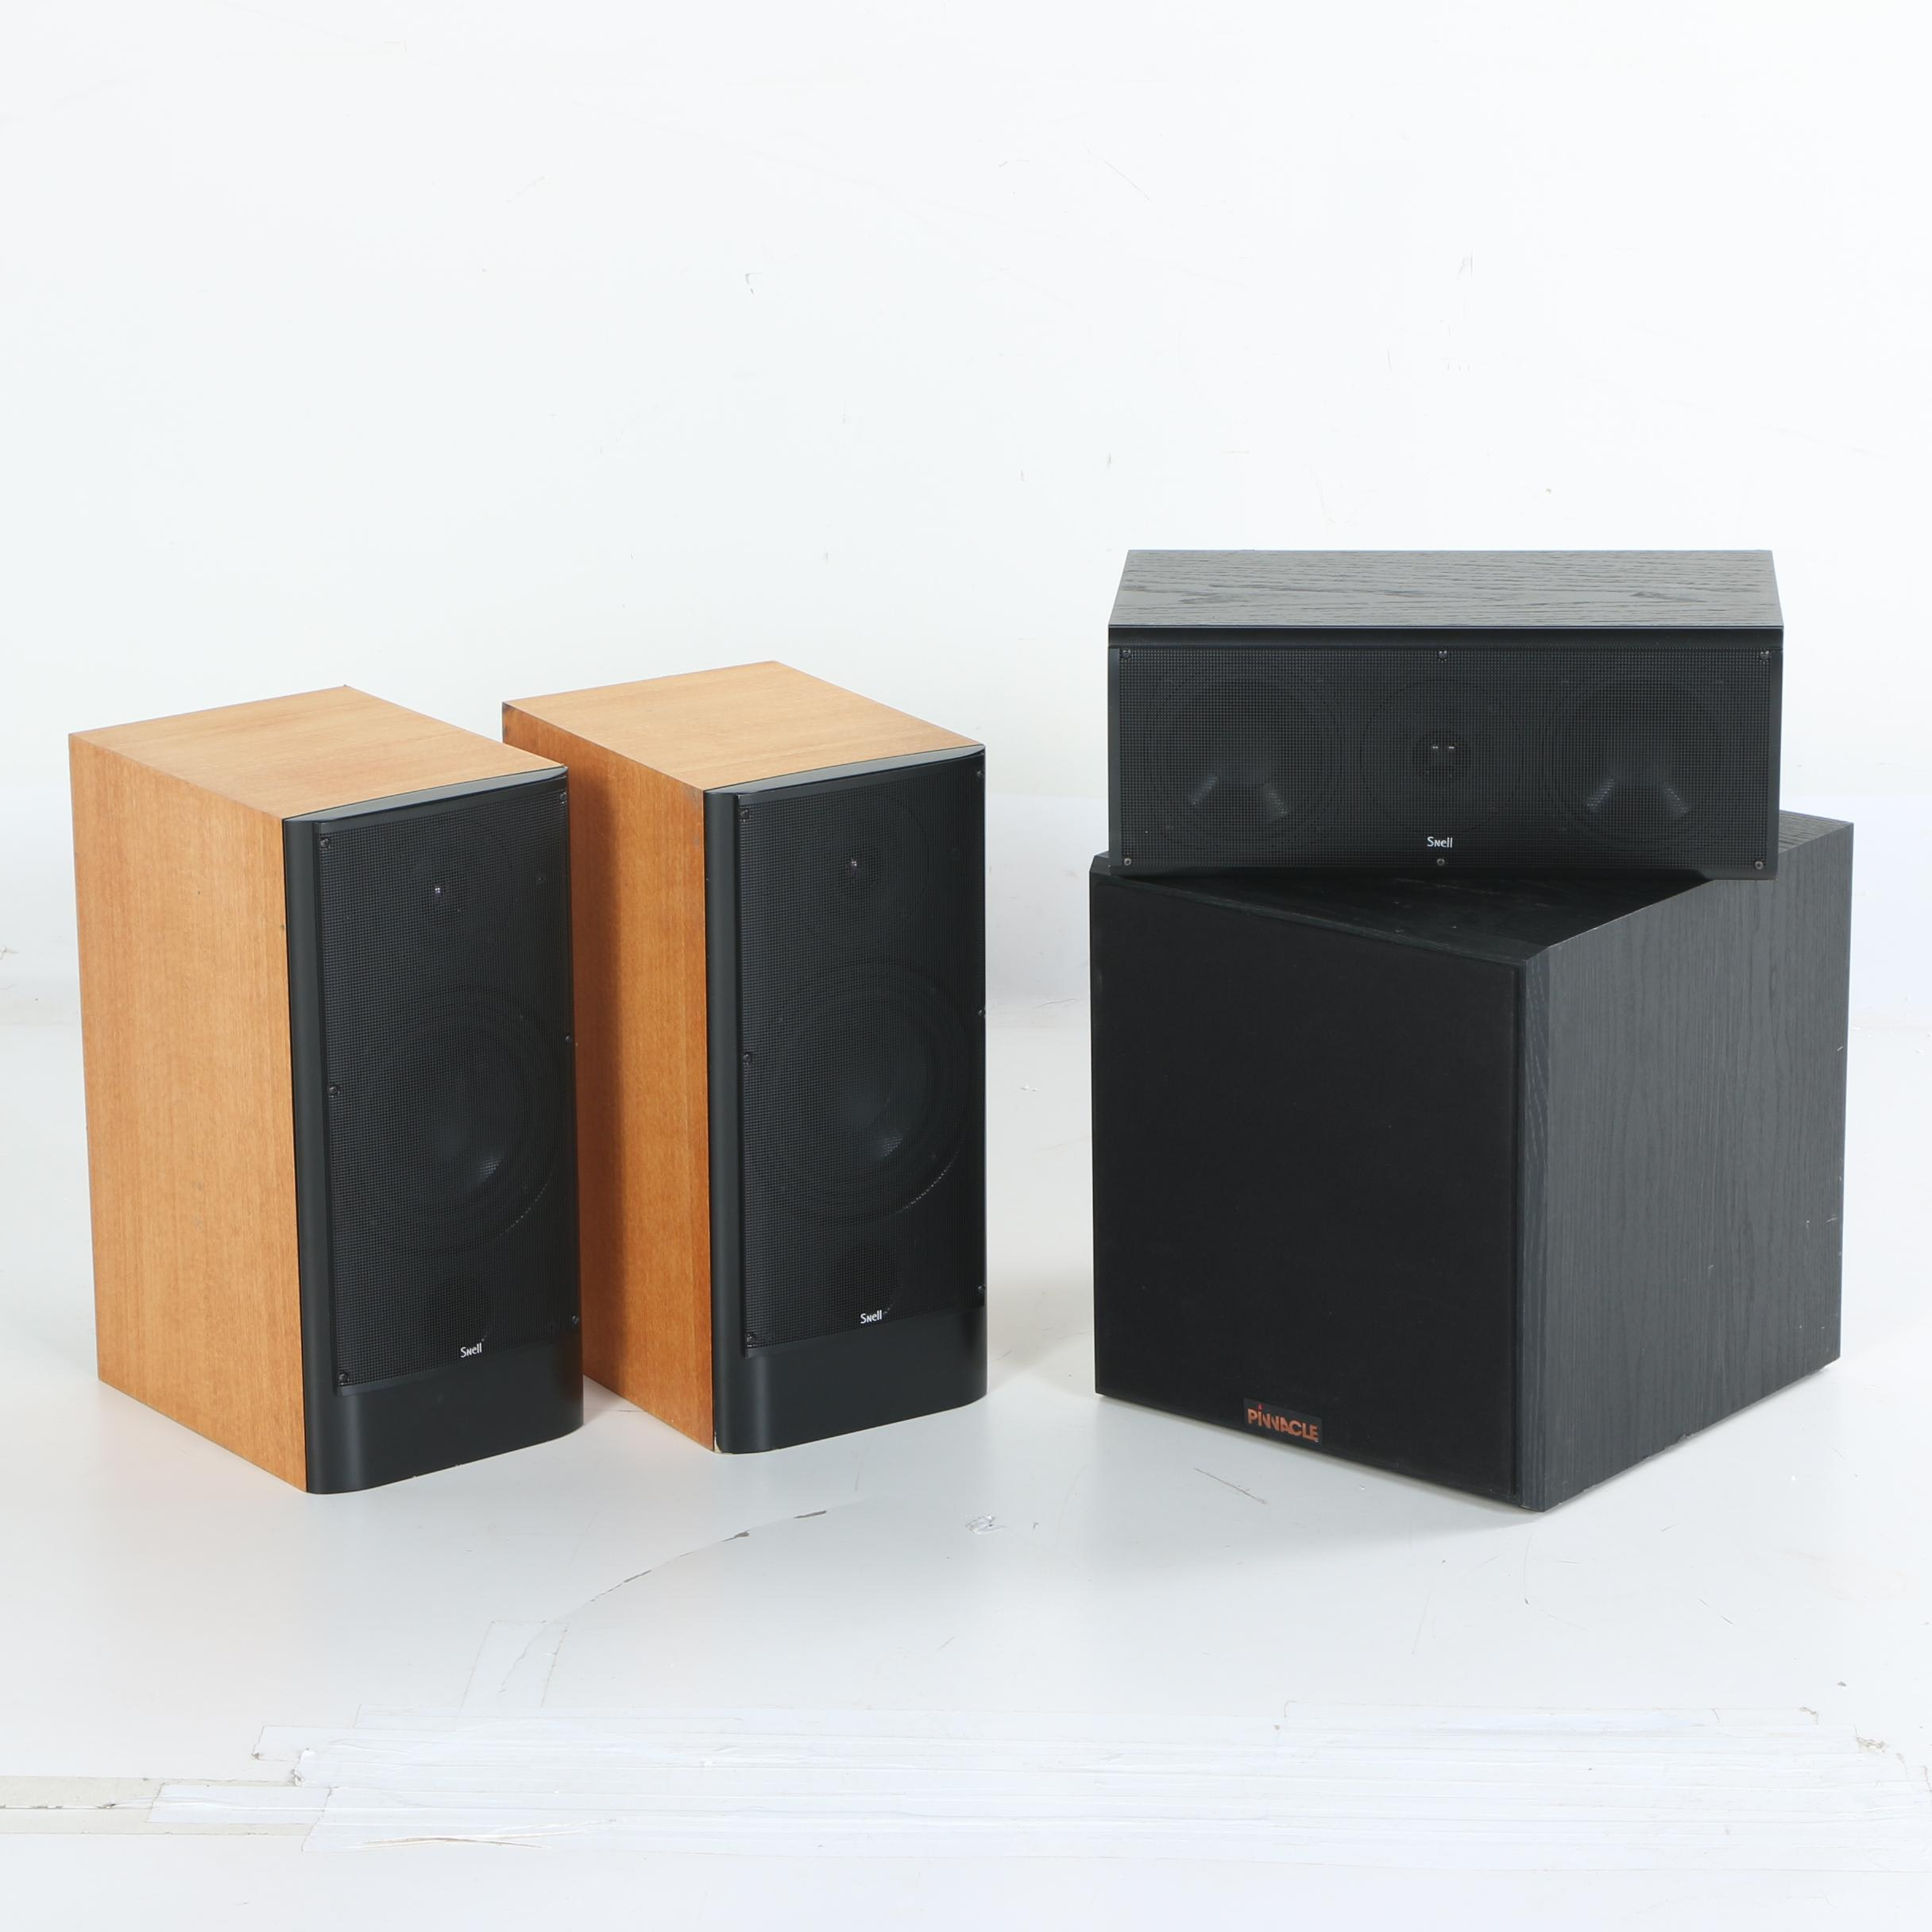 Snell and Pinnacle Speakers